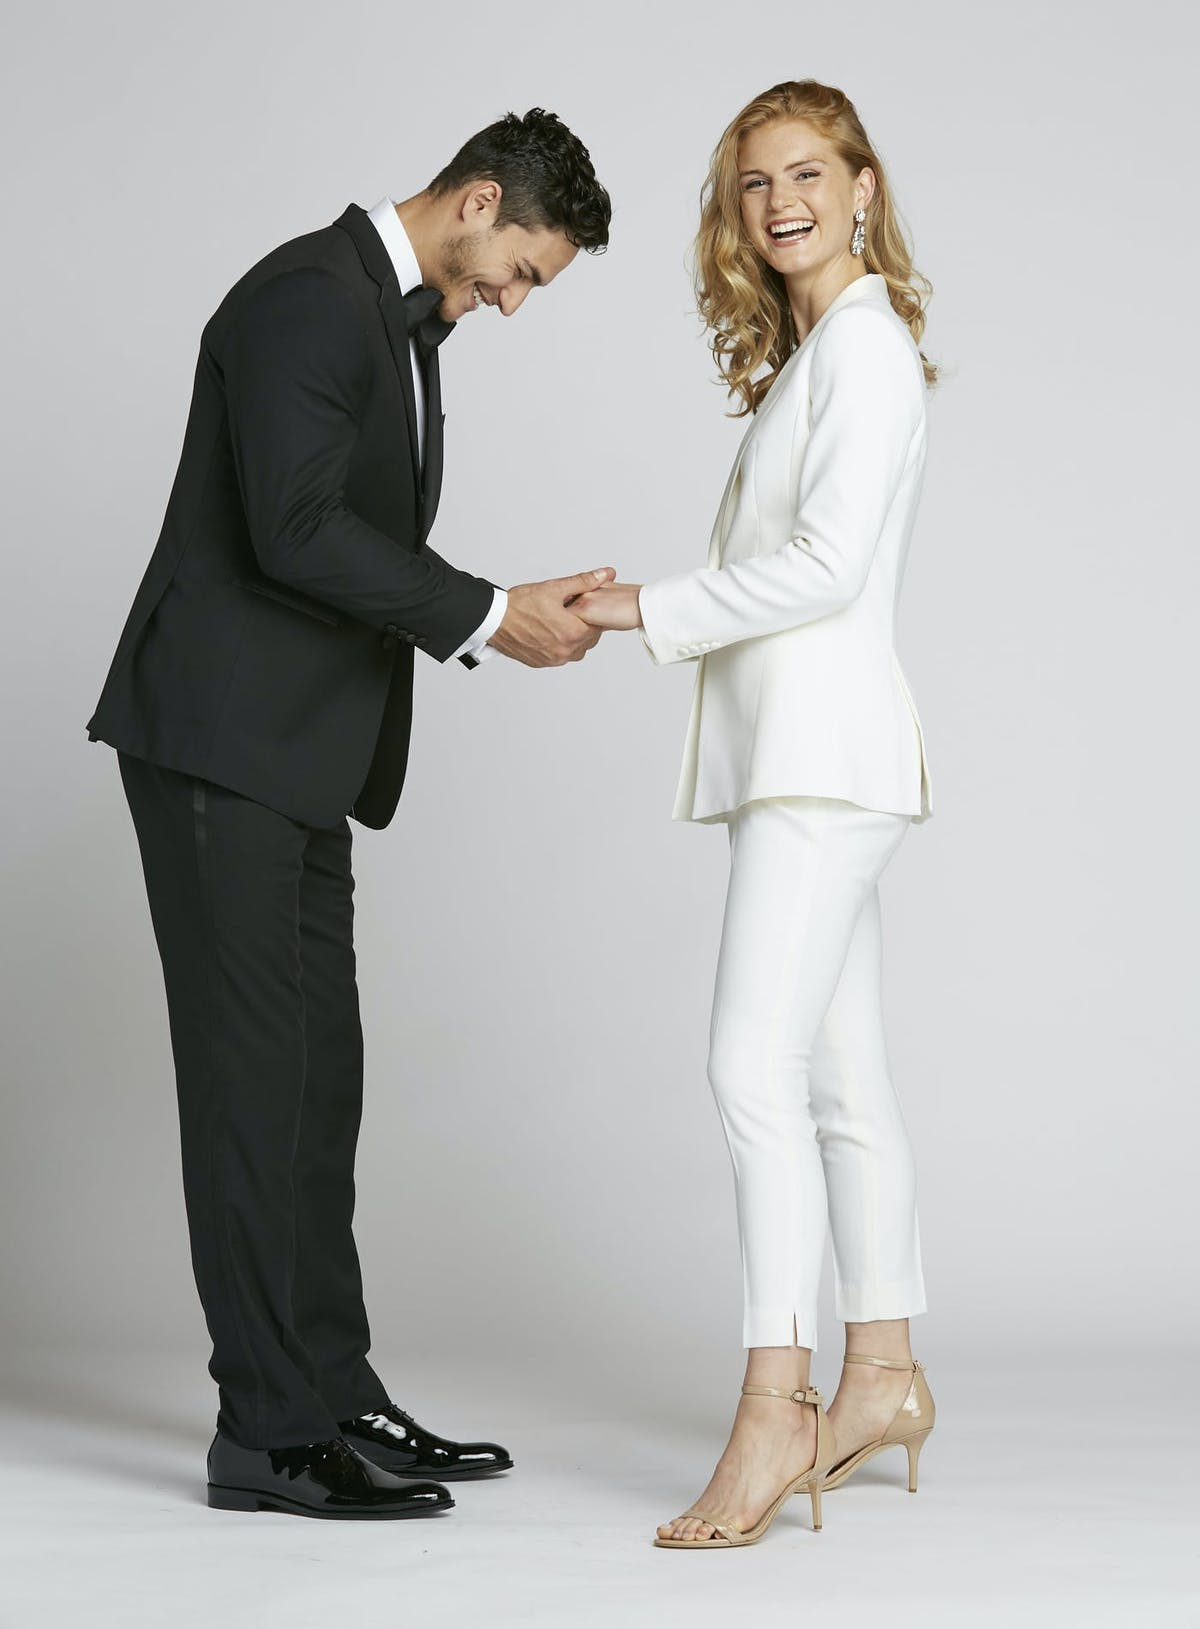 Guide on what to wear to a rehearsal dinner. Instead of a white rehearsal dinner dress, try a white women's tuxedo.